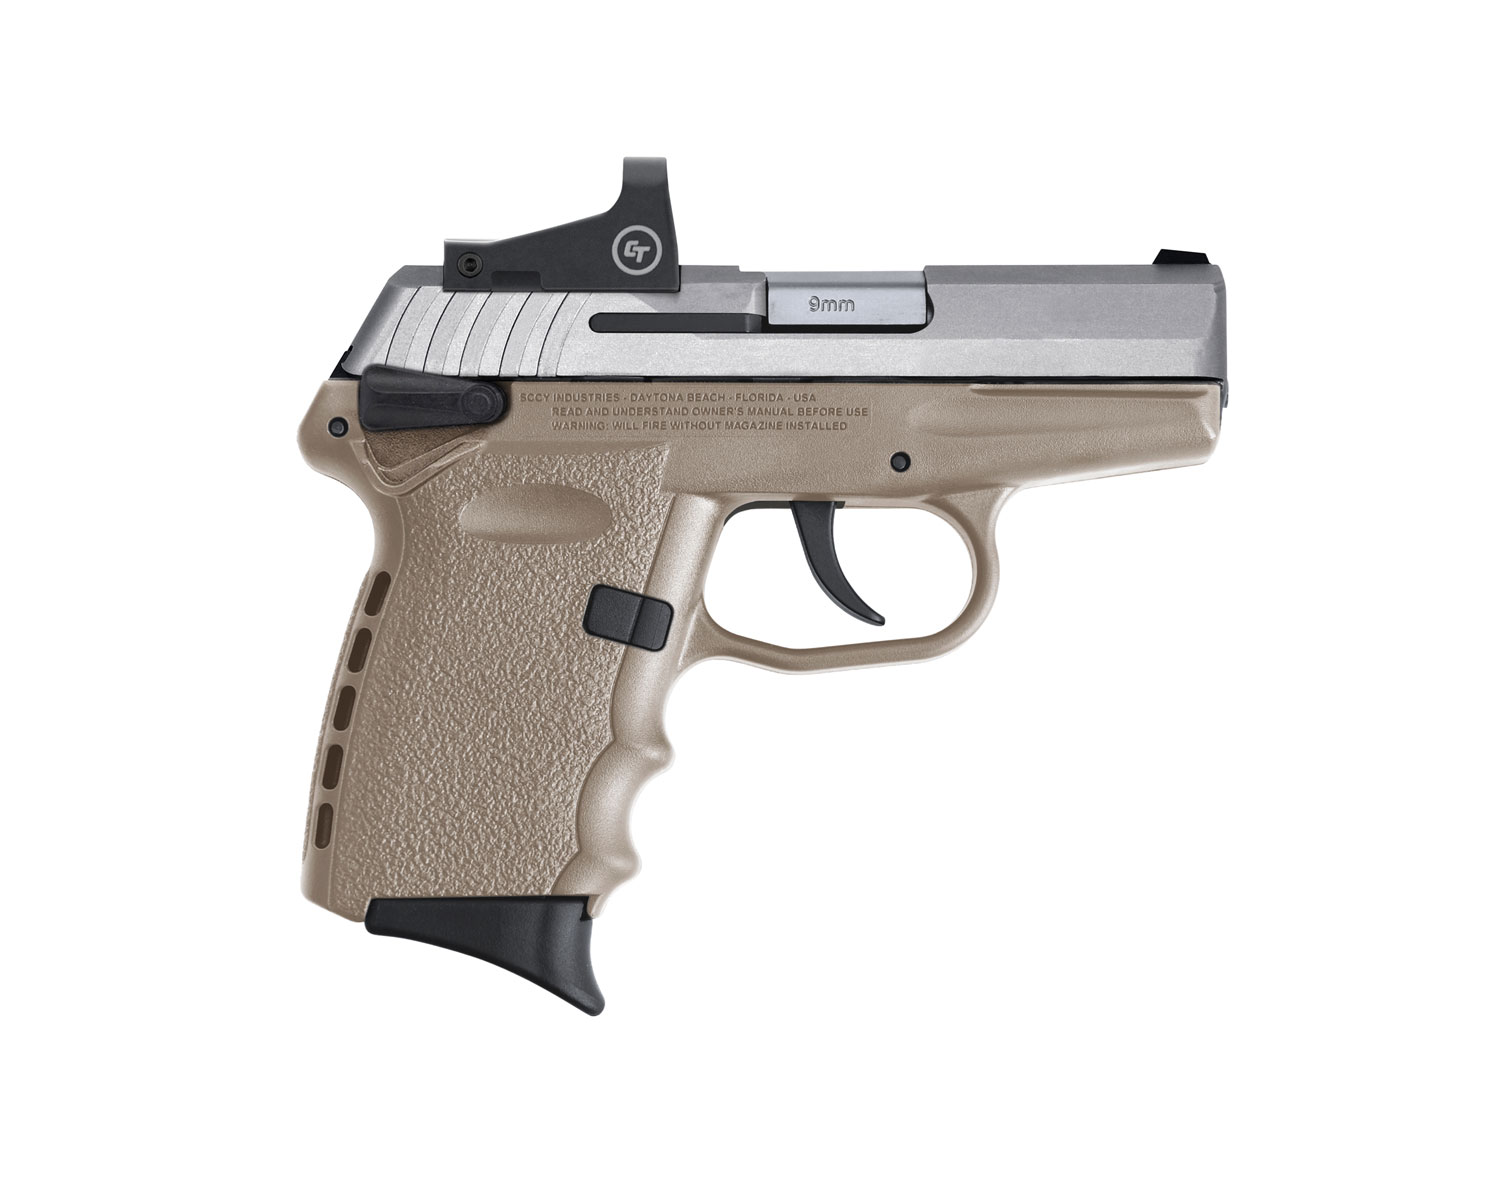 SCCY Industries CPX-1TTDERD CPX-1 RD DAO 9mm Luger 3.10